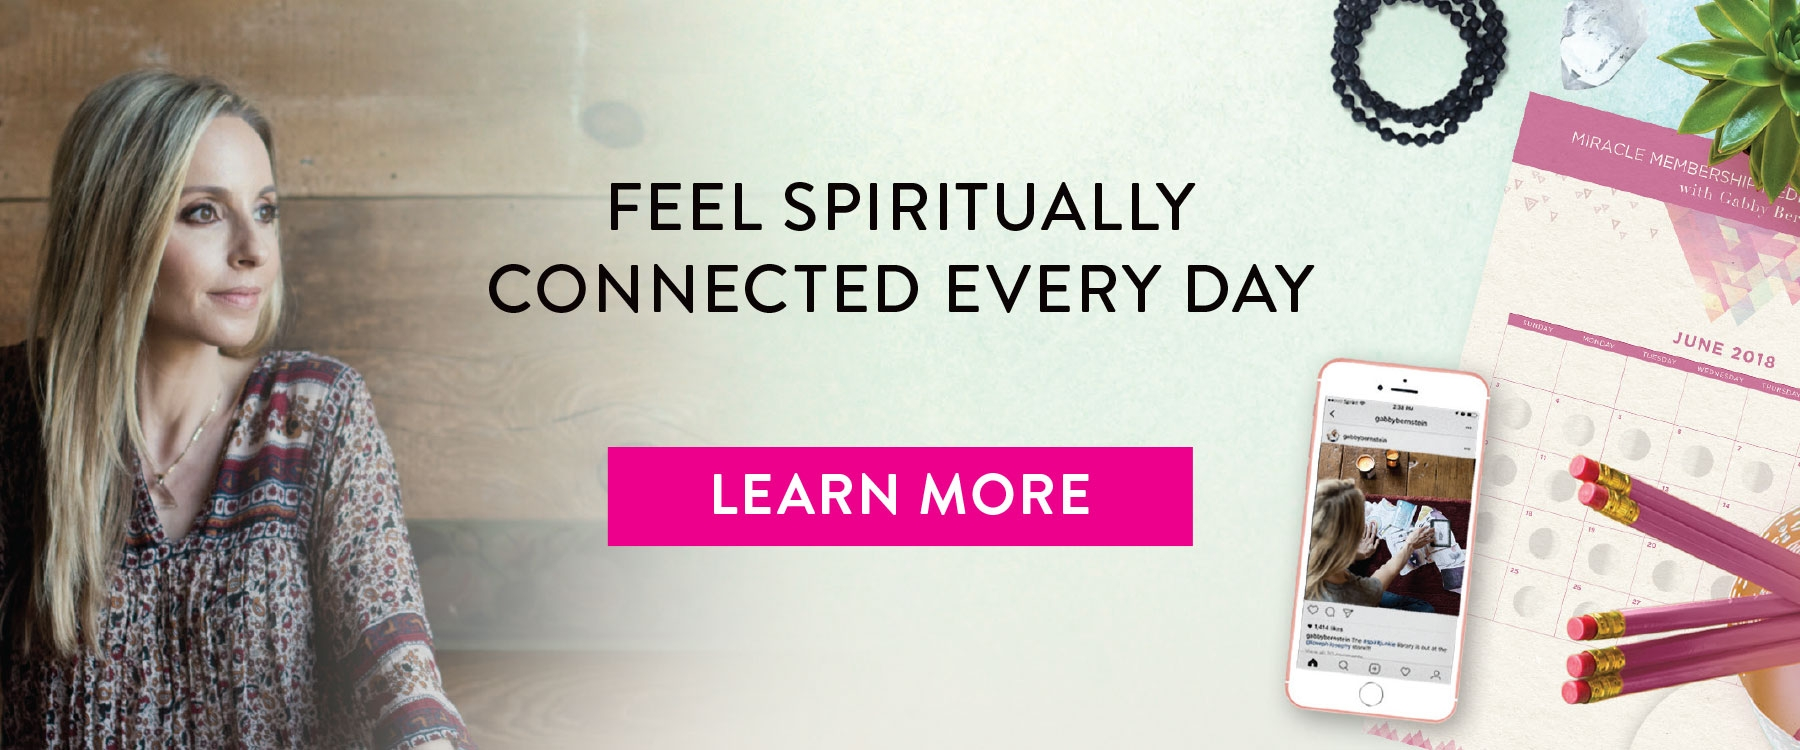 feel spiritually connected every day - gabby bernstein - miracle membership